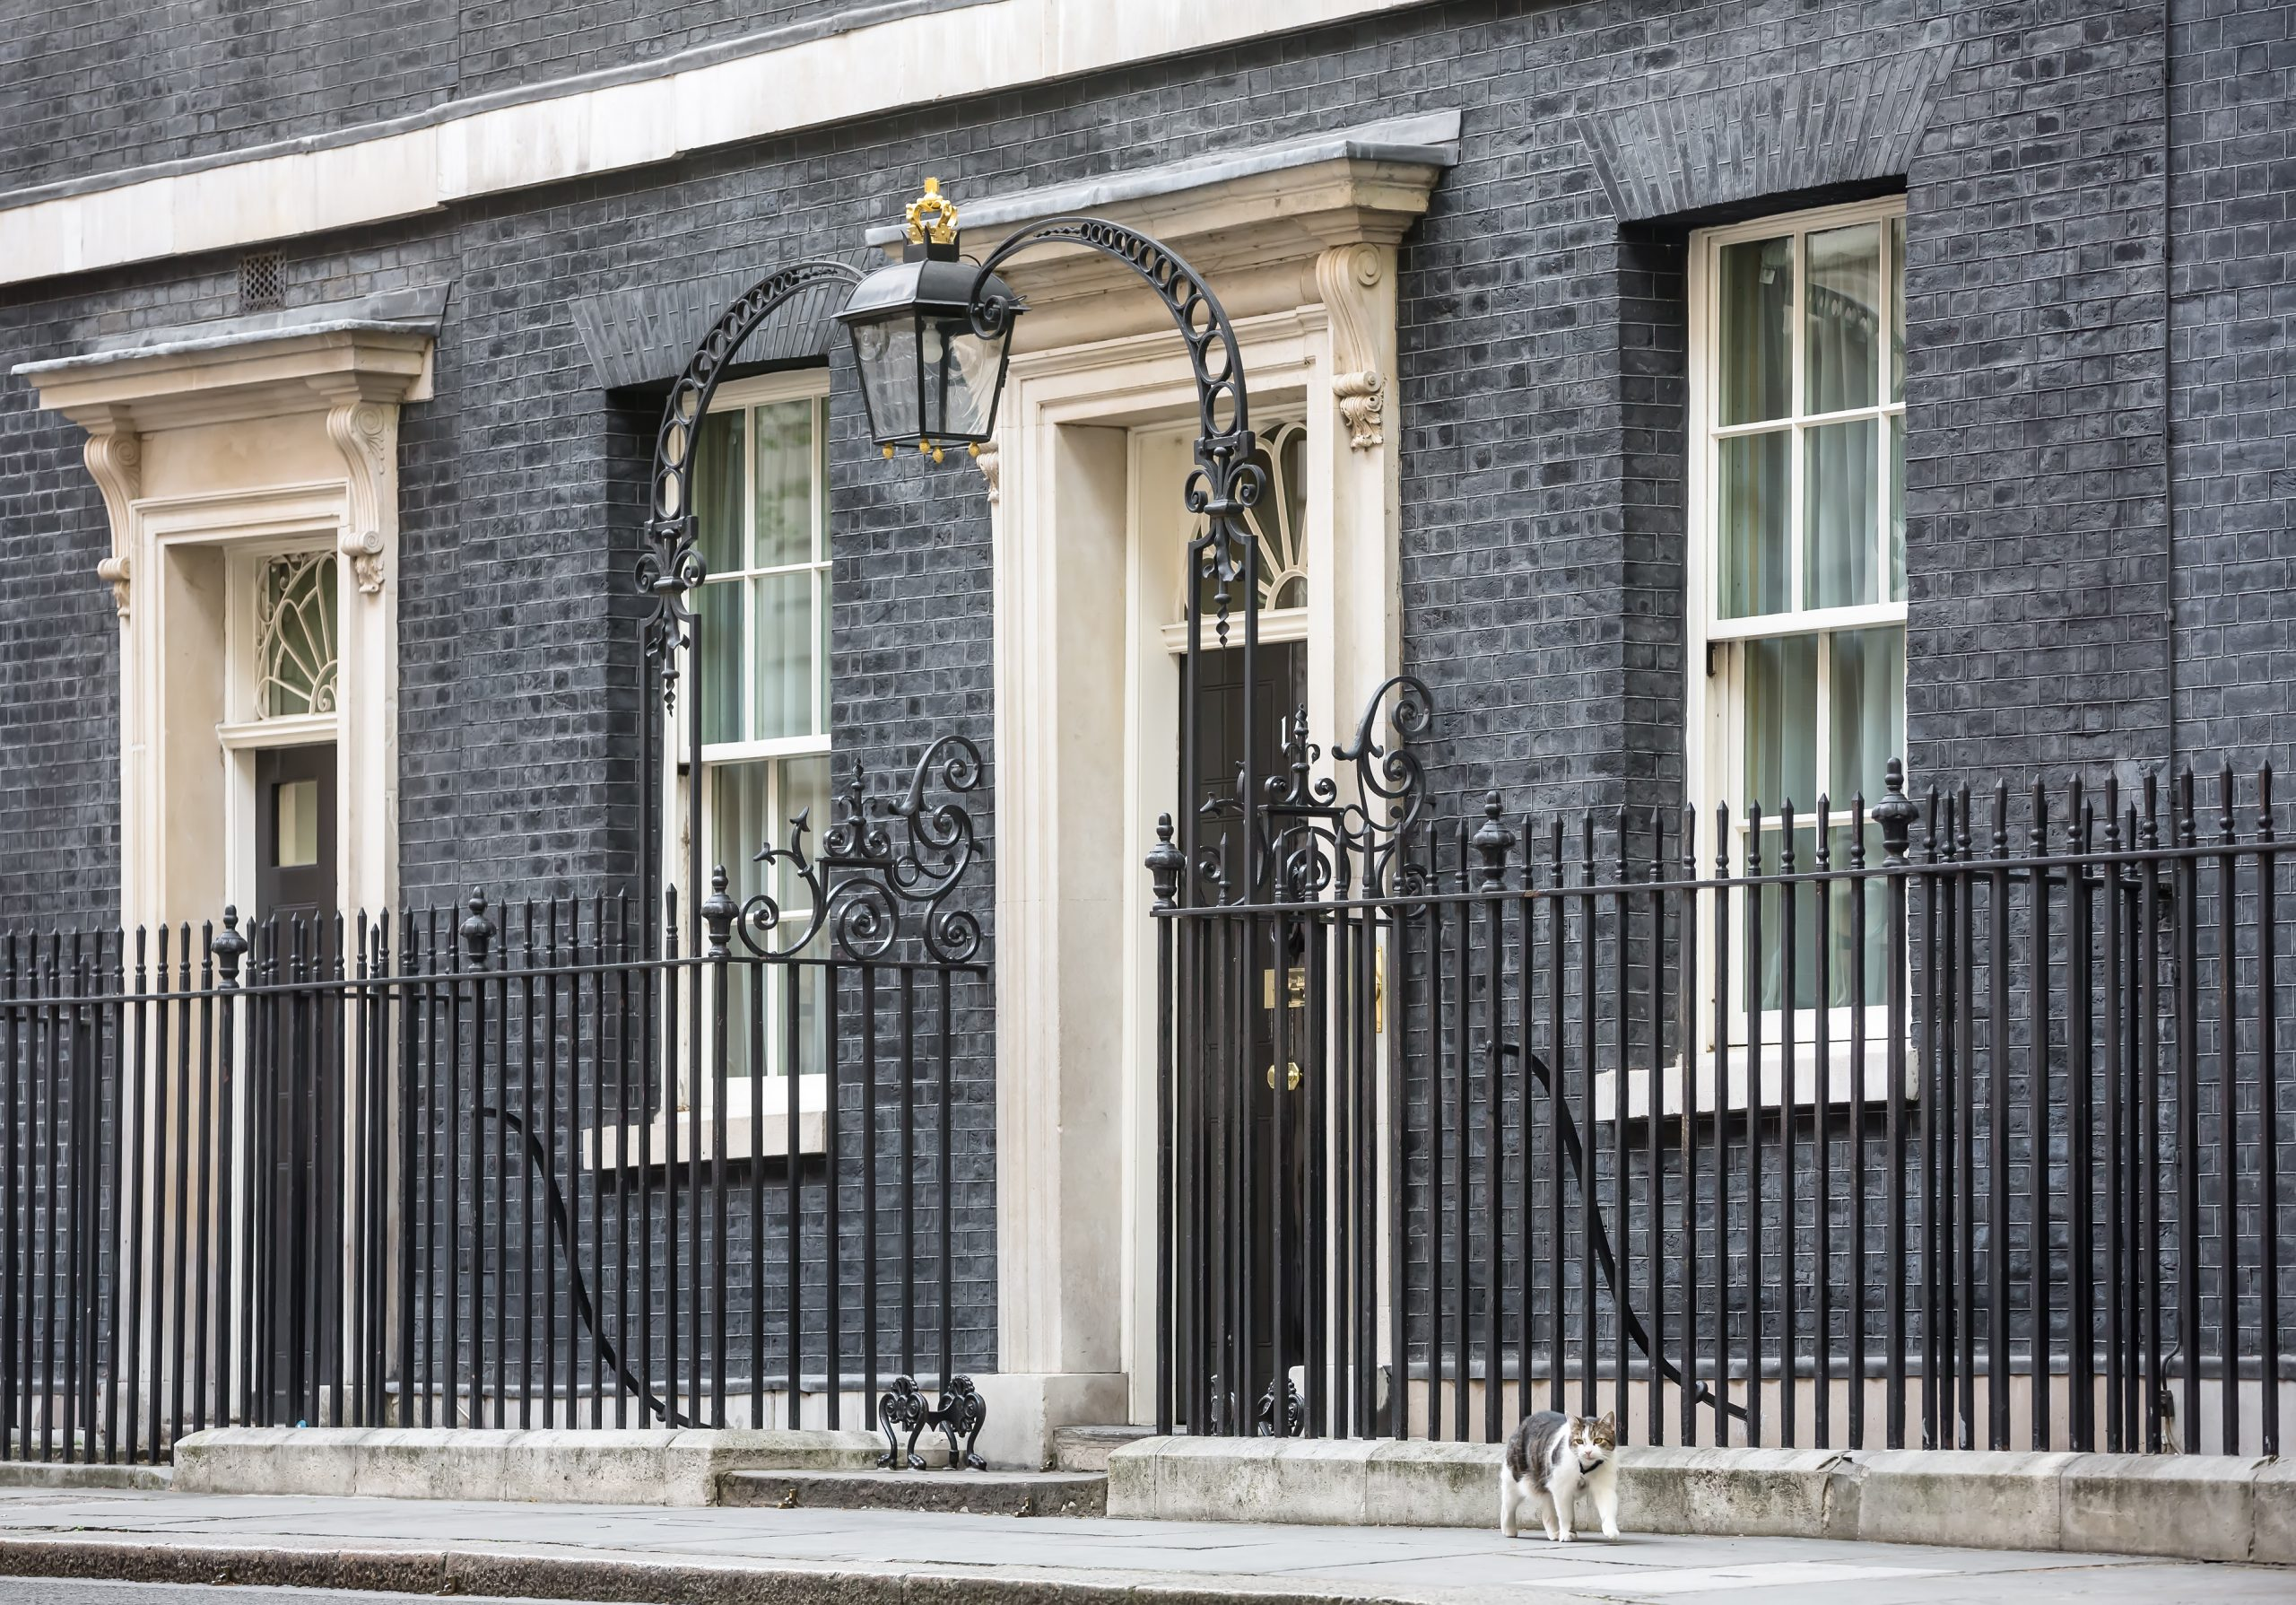 Charity Commission is yet to receive a registration request for 'Downing Street' charity